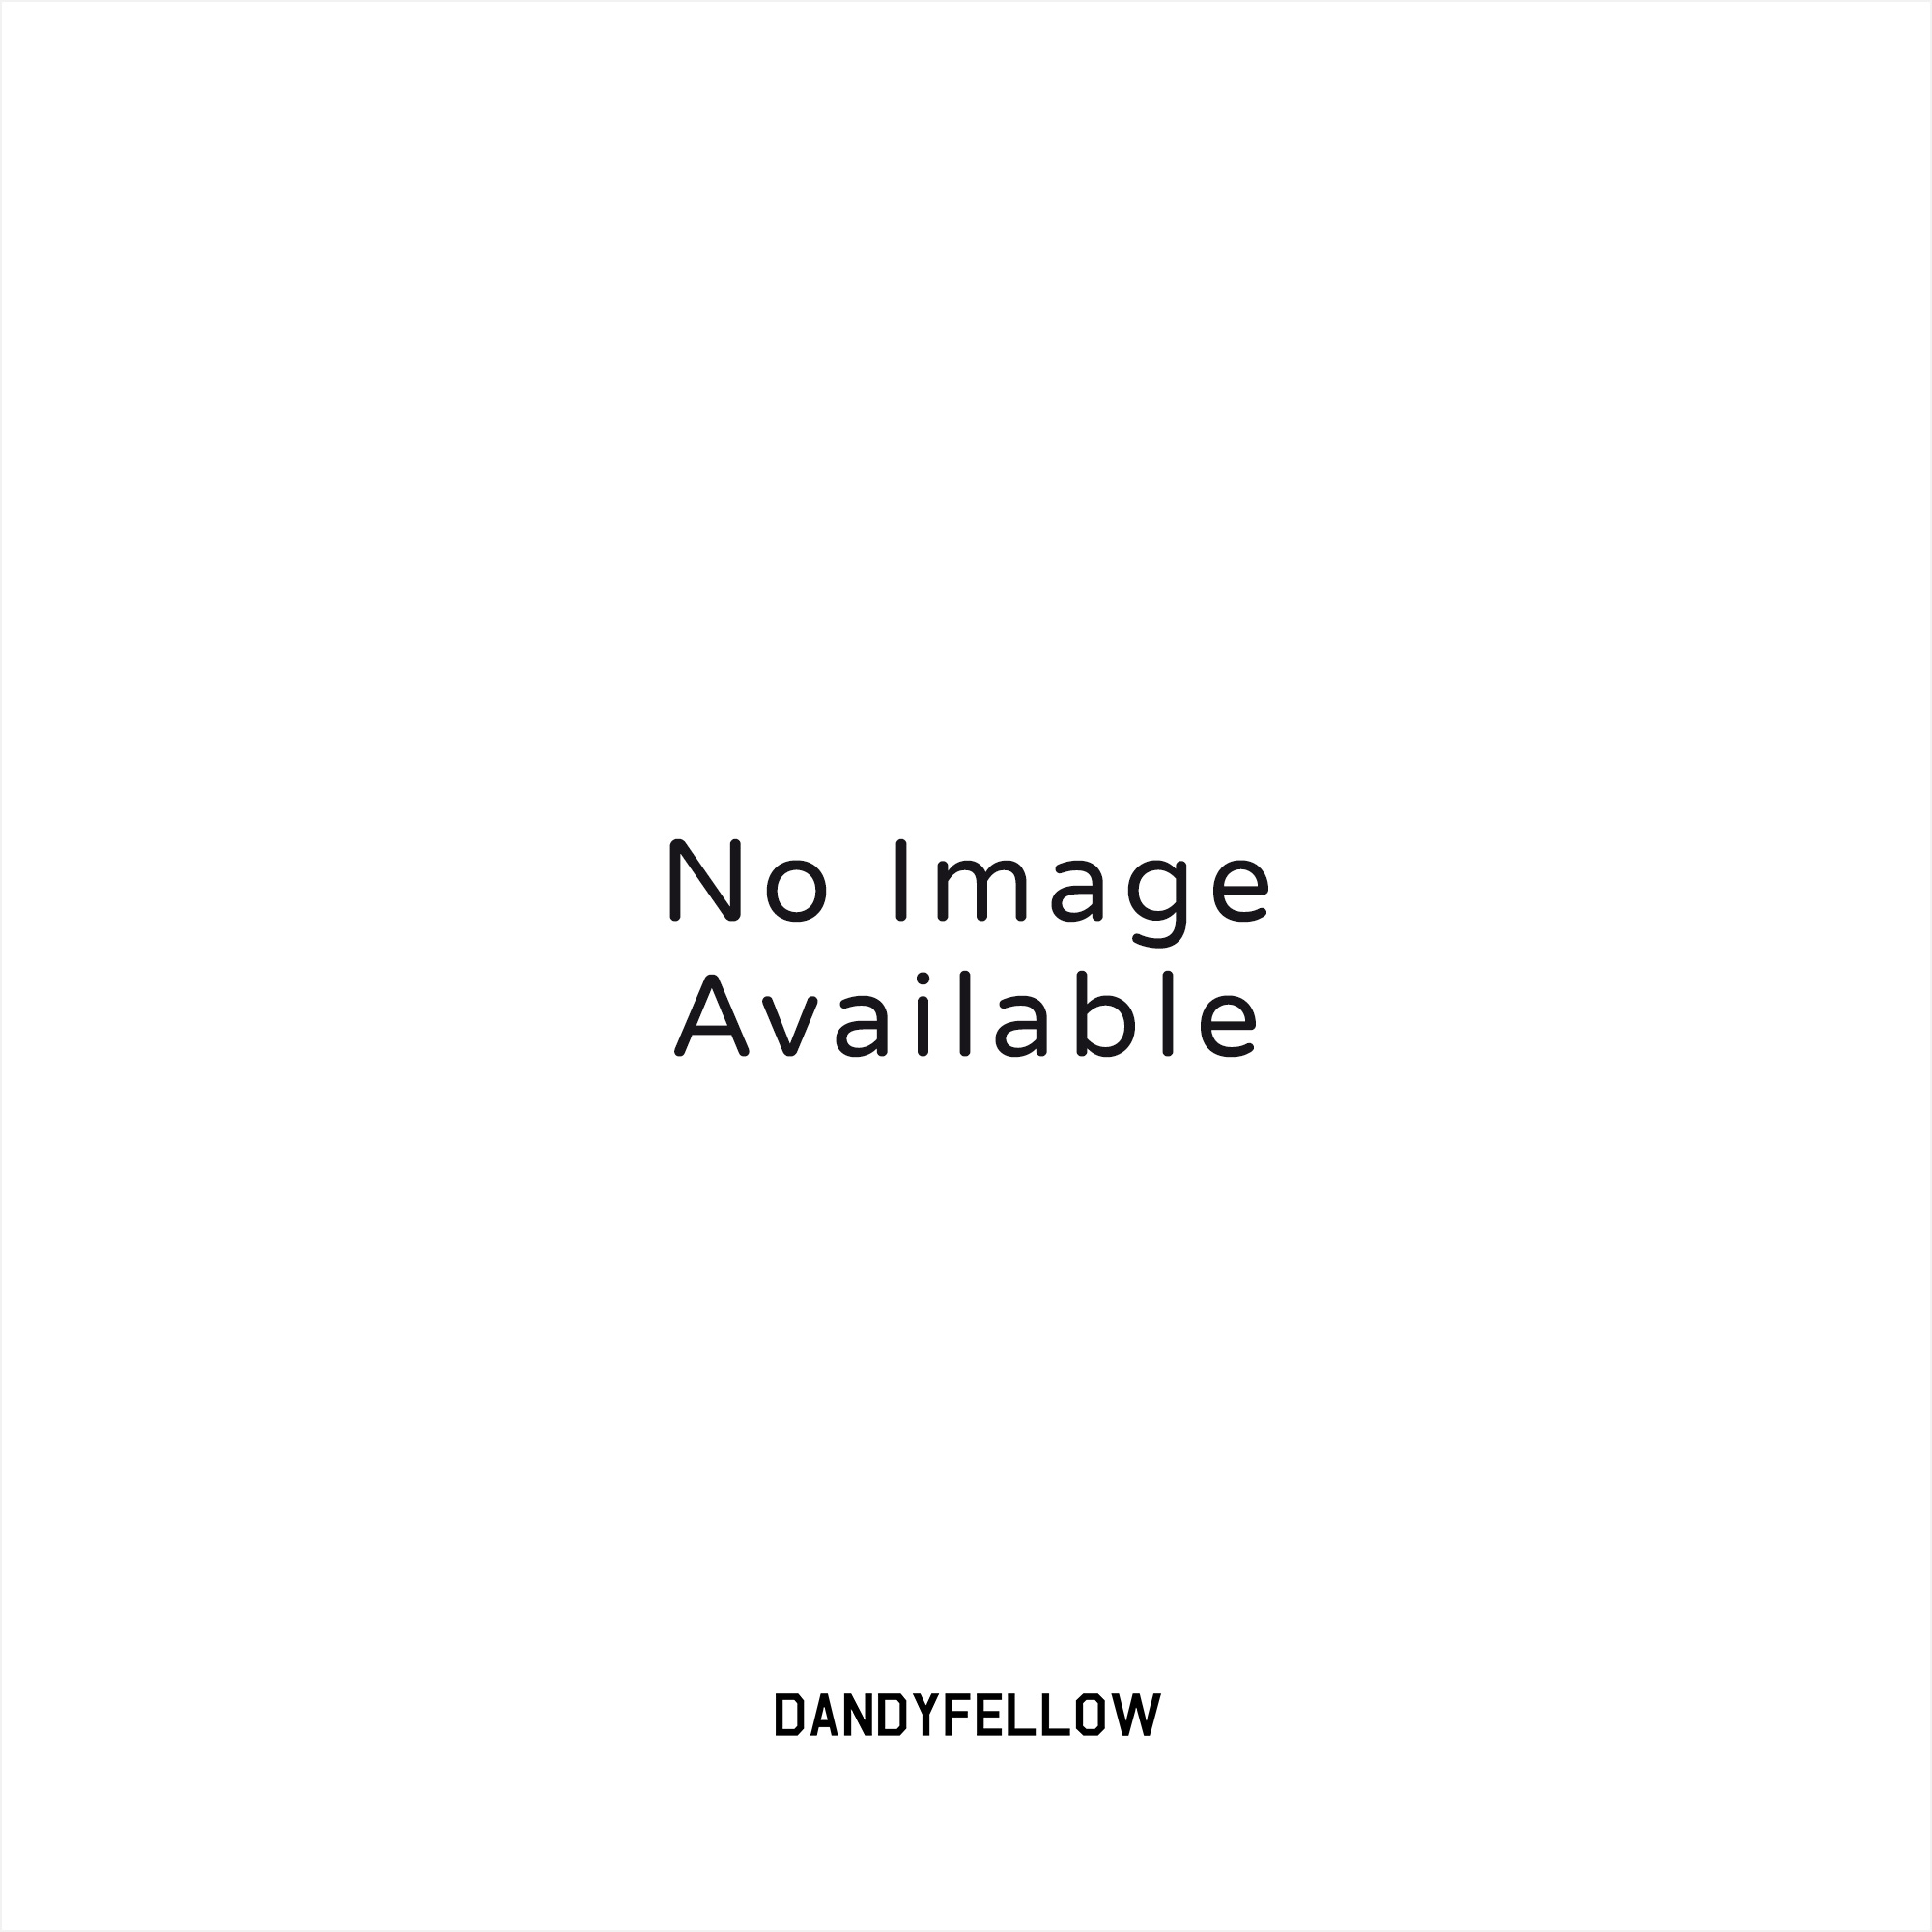 0857fdffb8c Adidas Y-3 Souberou (Chilli Pepper   Black) at Dandy Fellow